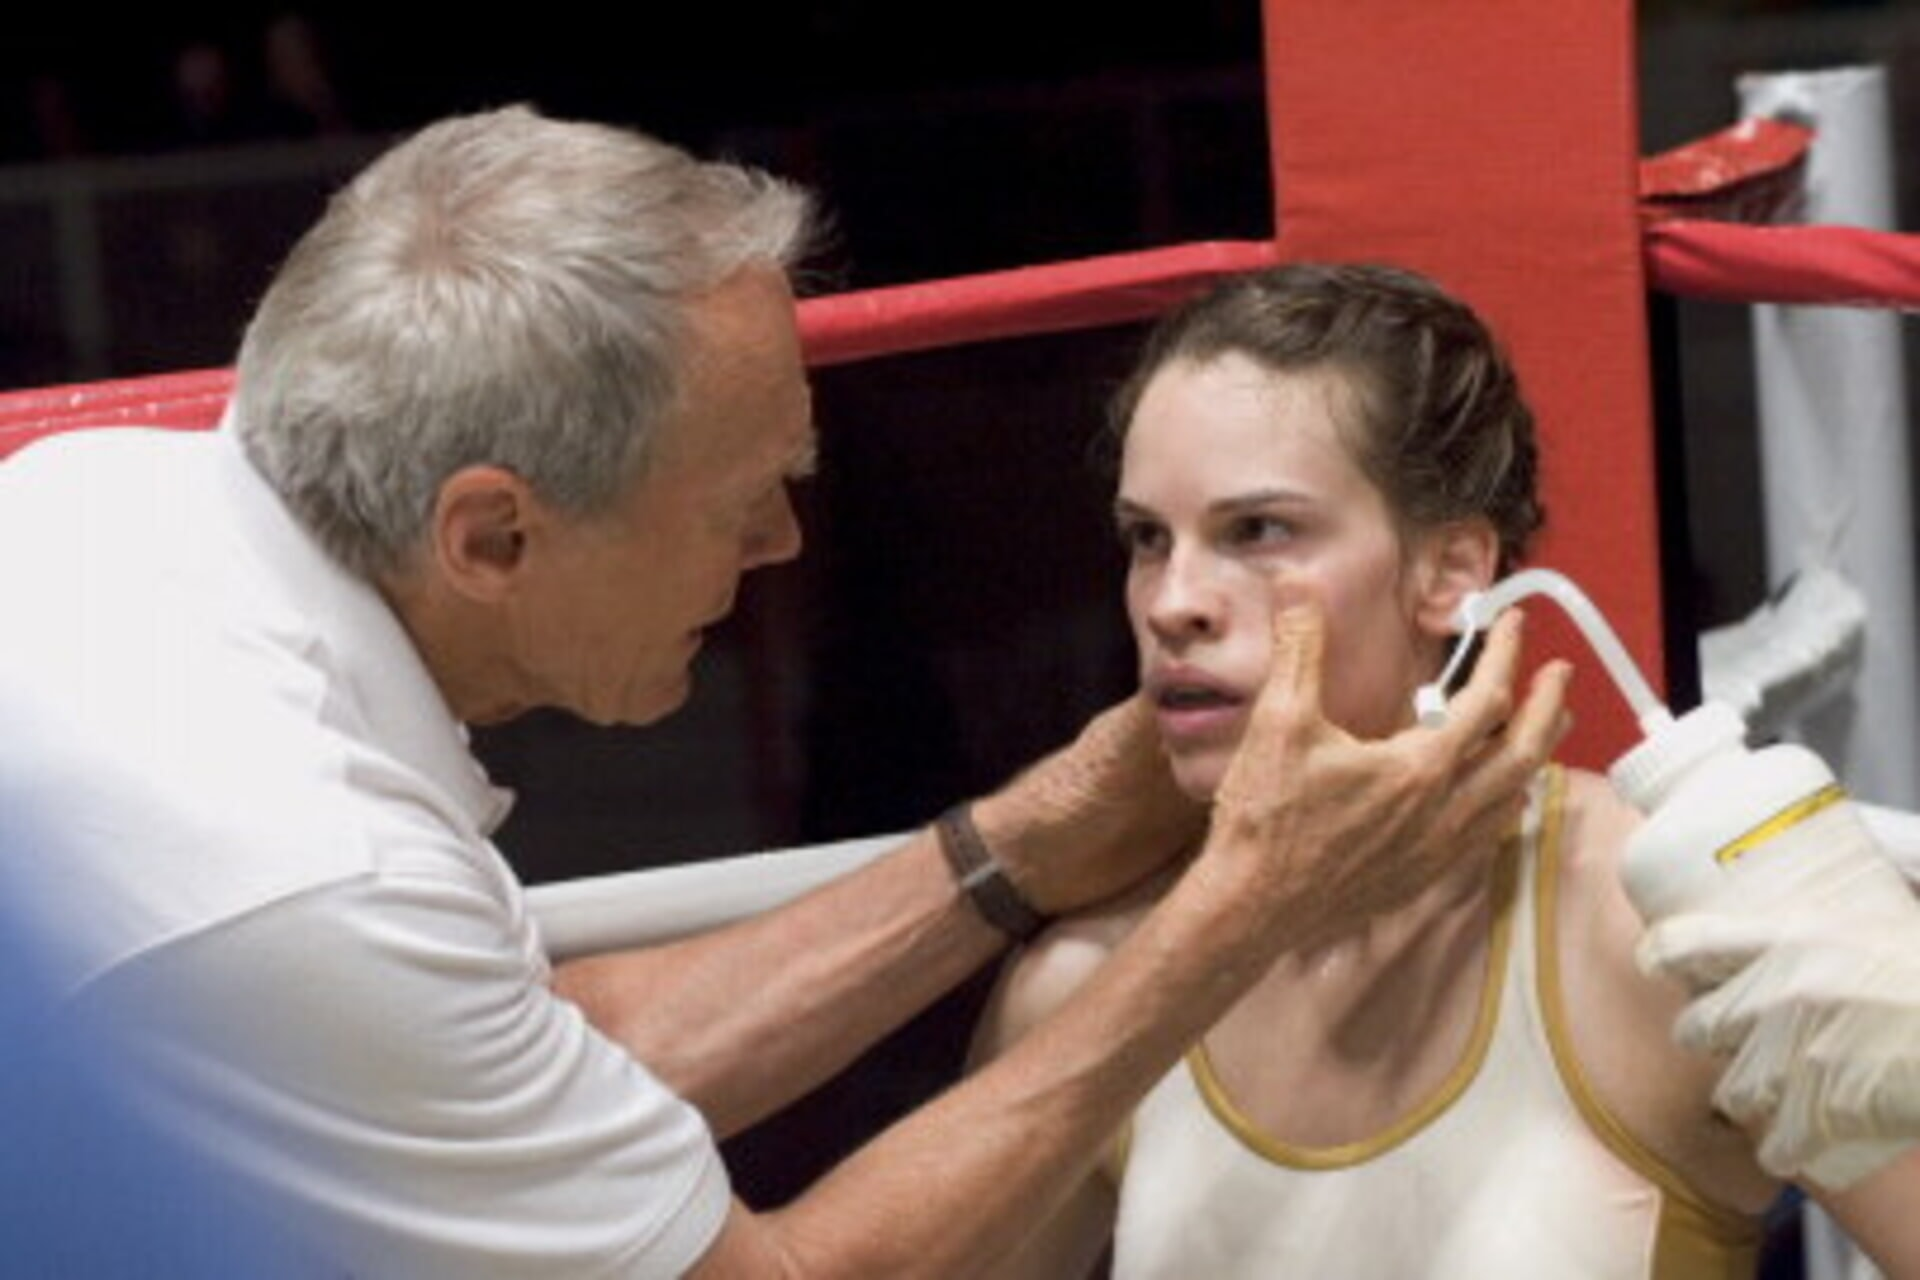 Million Dollar Baby - Image 8